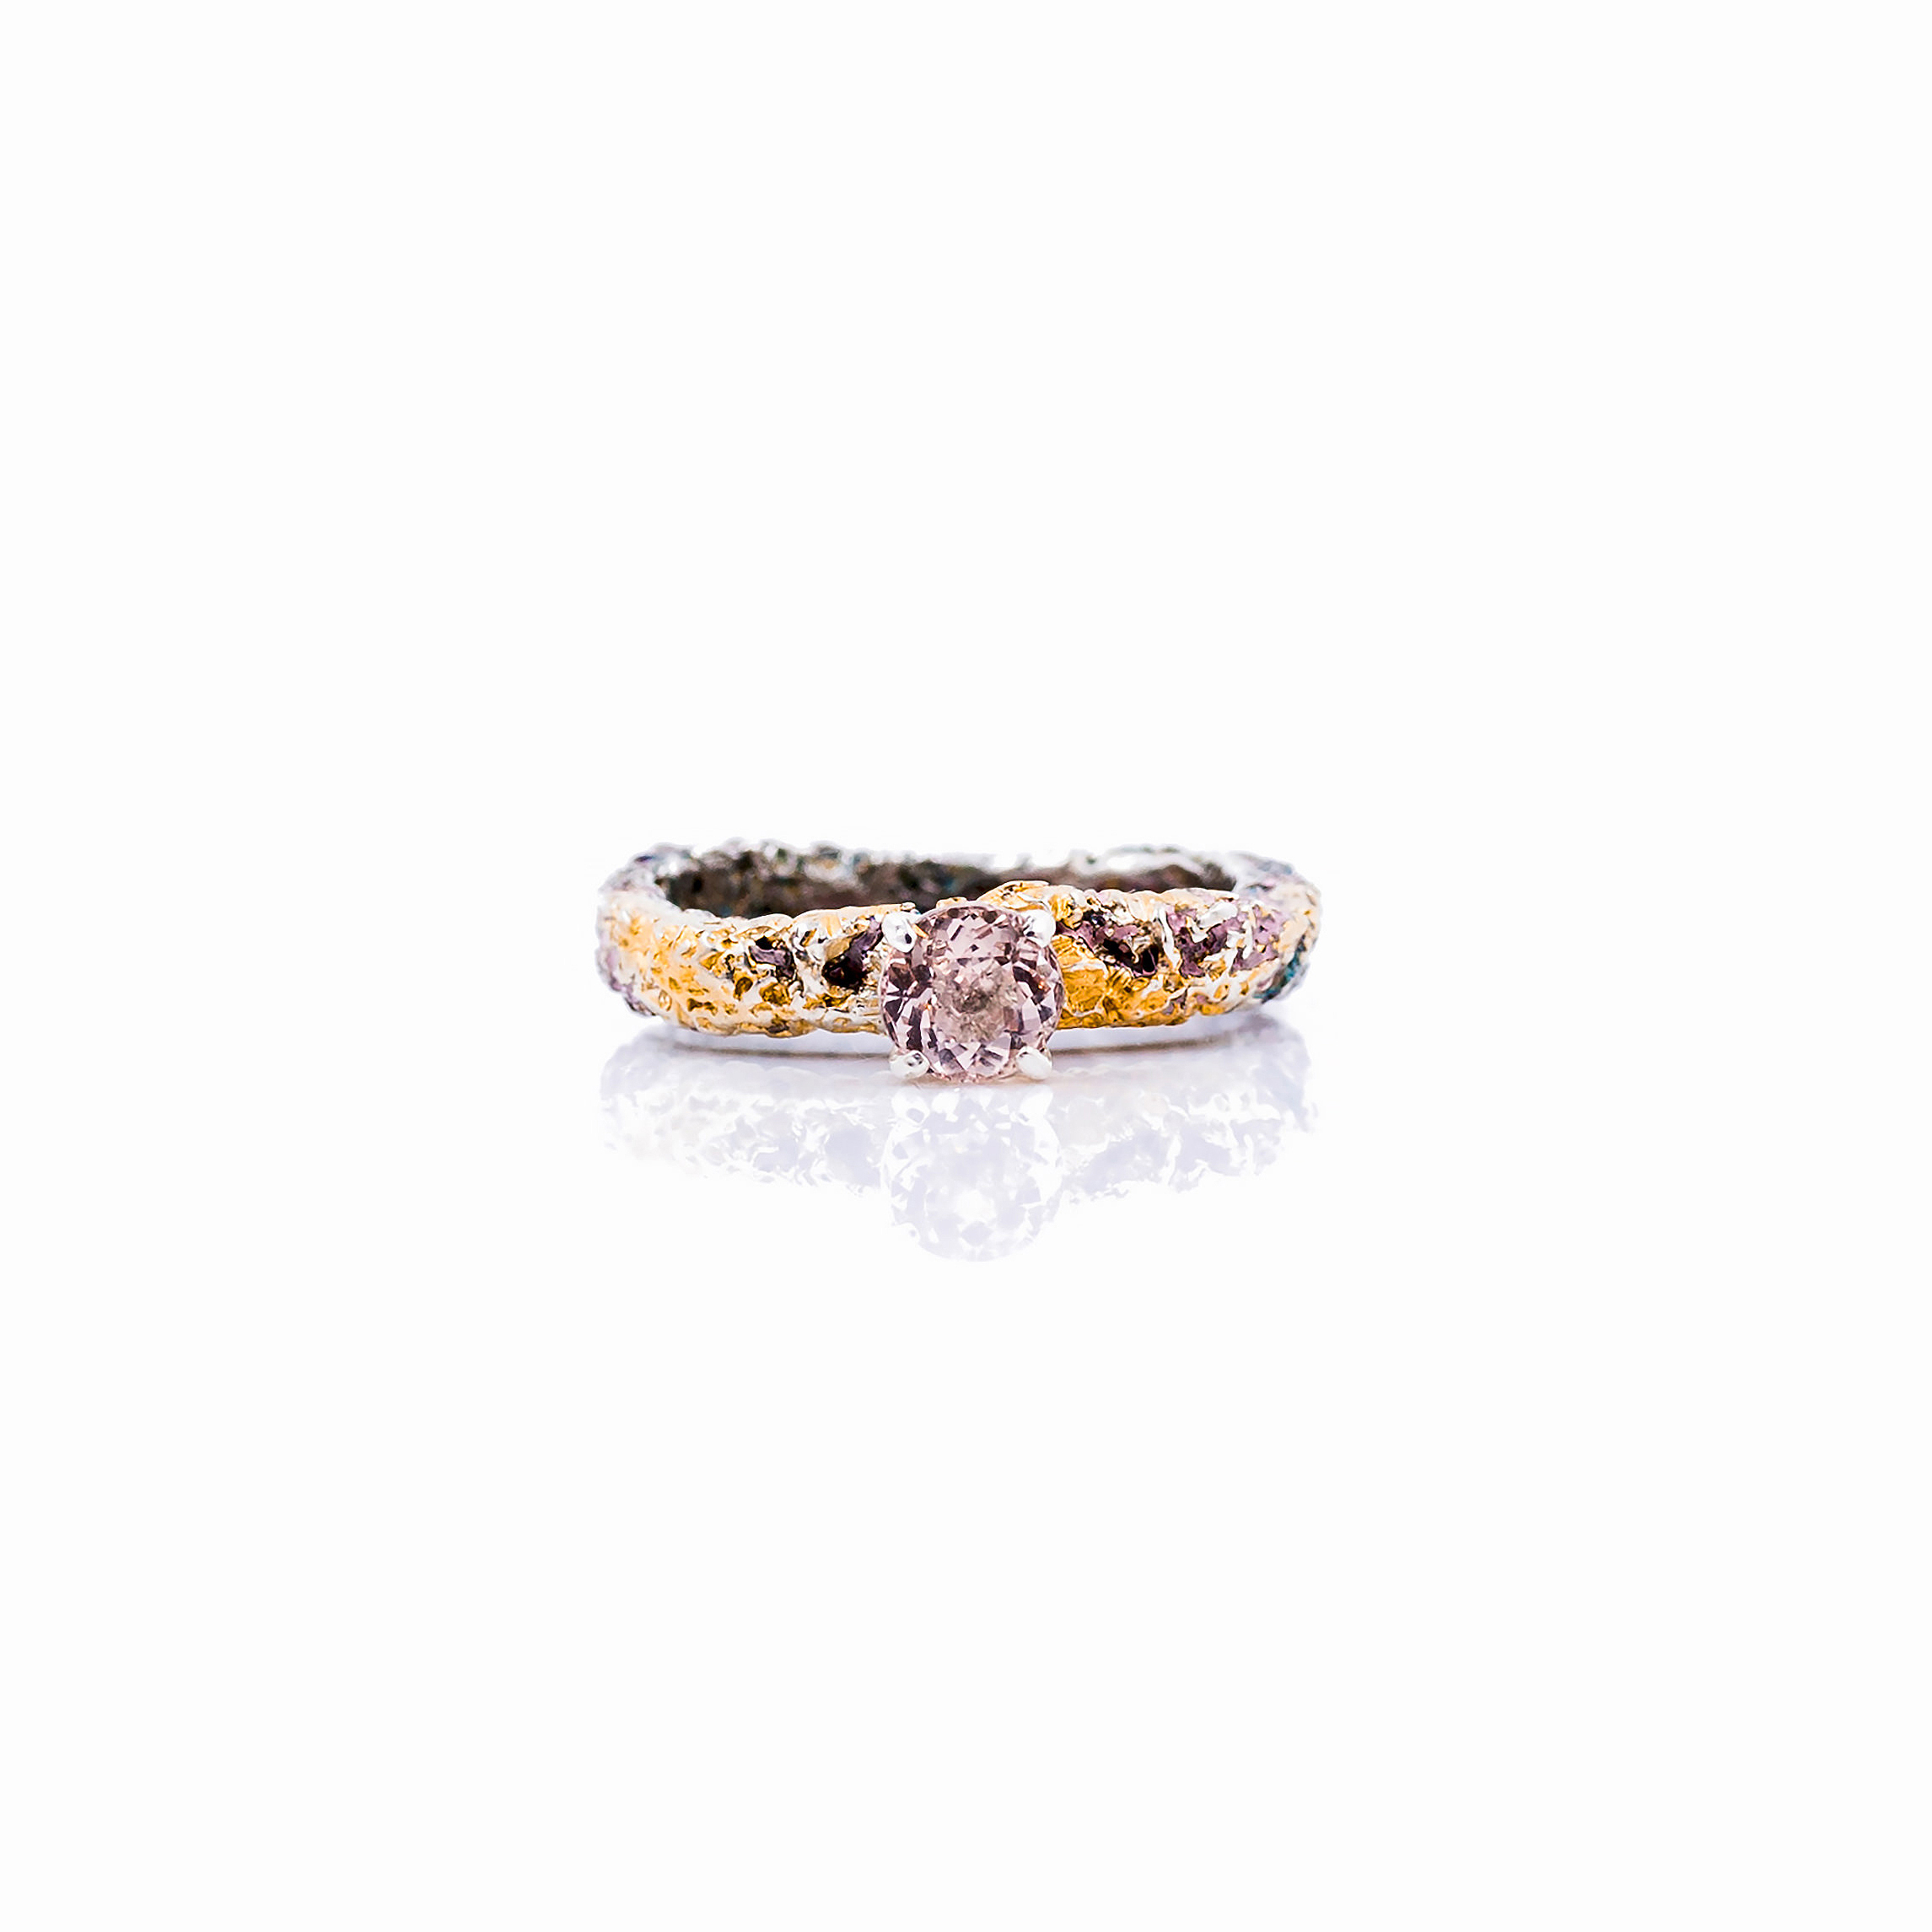 Graceful Inner Islands Solitaire Ring |   Sterling silver, morganite, paint, gold vermeil, patina.